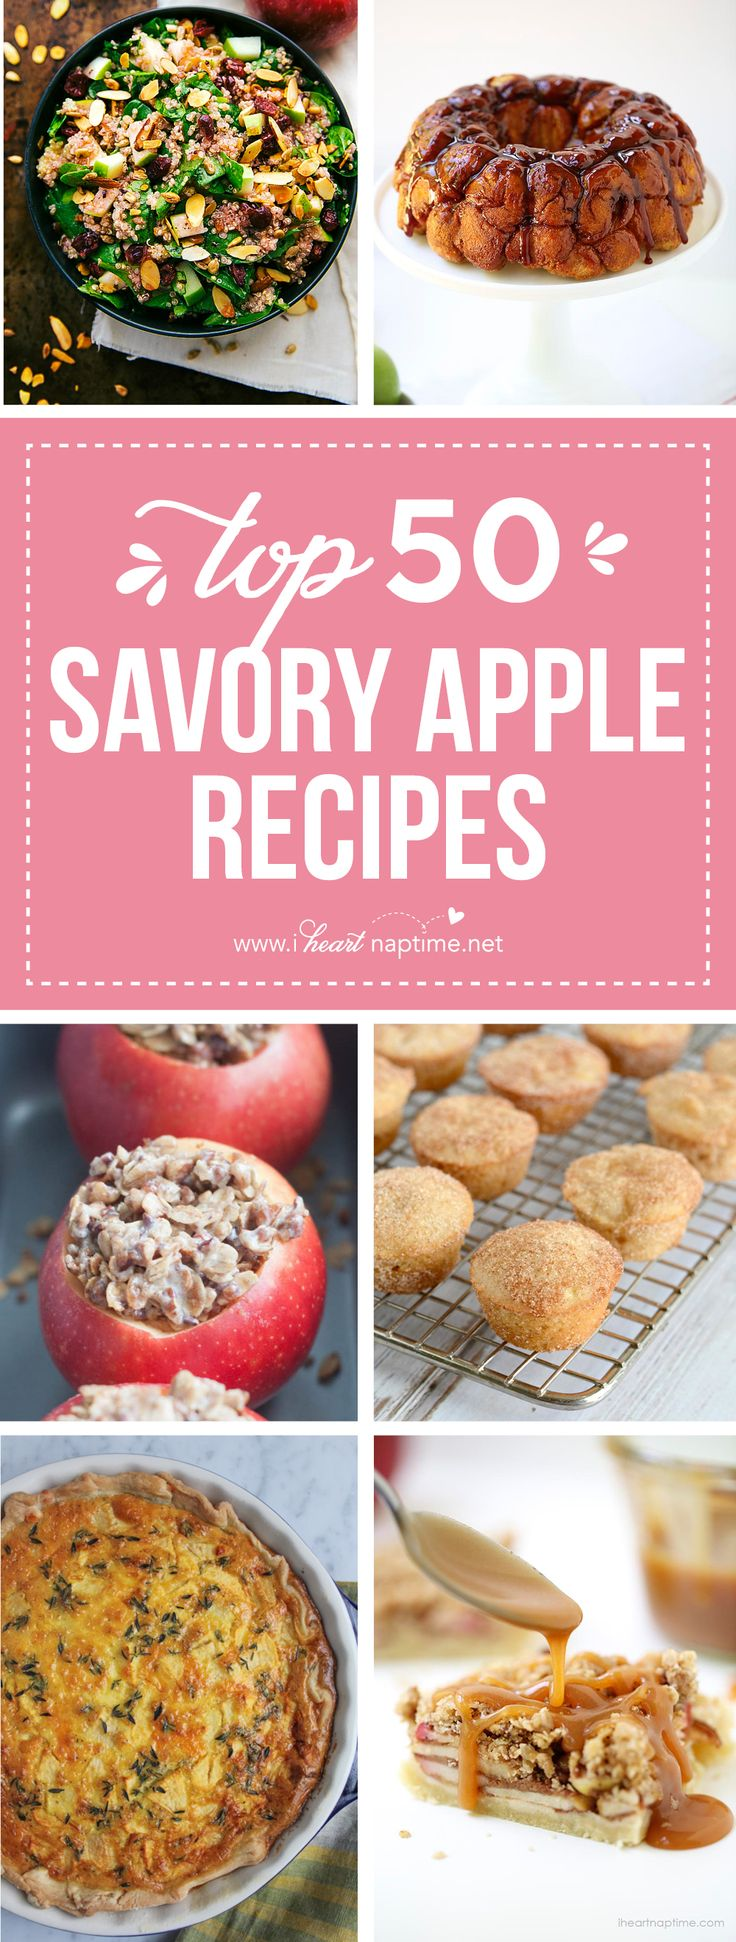 Top 50 Apple Recipes... a wonderful list of savory apple dishes from stuffed chicken, cranberry apple quinoa salads, carrot apple slaw all the way to apple gouda grilled cheese.